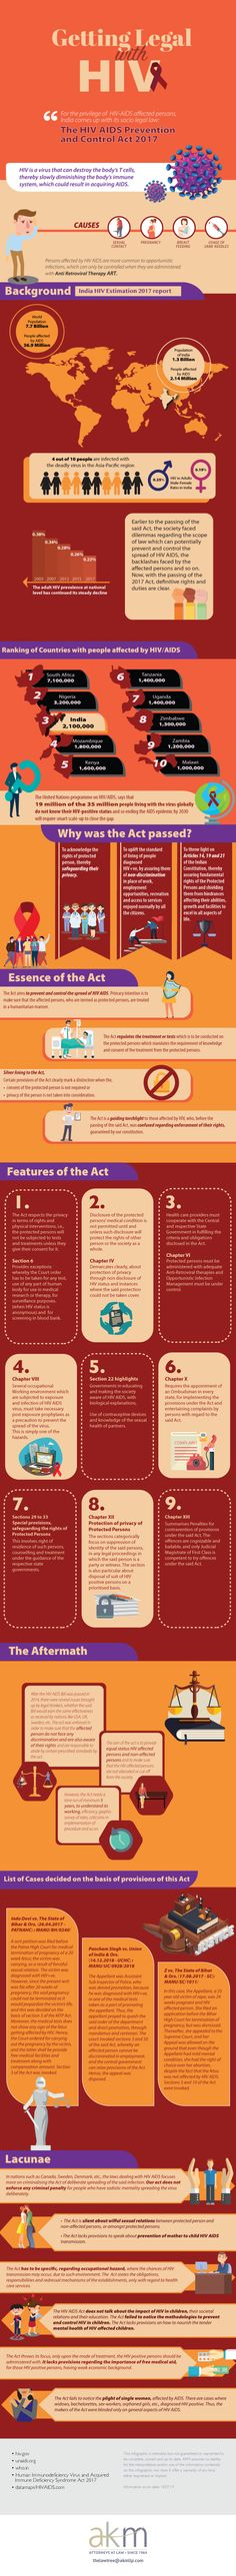 The HIV AIDS Prevention and Control Act 2017 Hiv Aids, Akm, The Agency, Supreme Court, Infographics, Acting, Infographic, Info Graphics